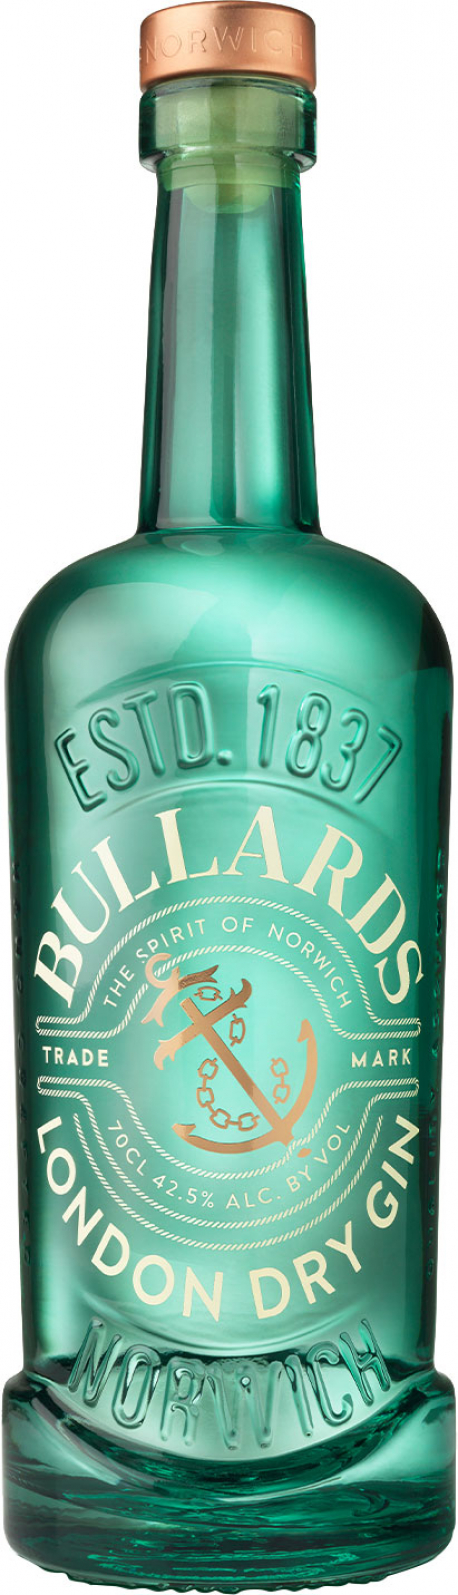 Image of Bullards Norwich - Dry Gin